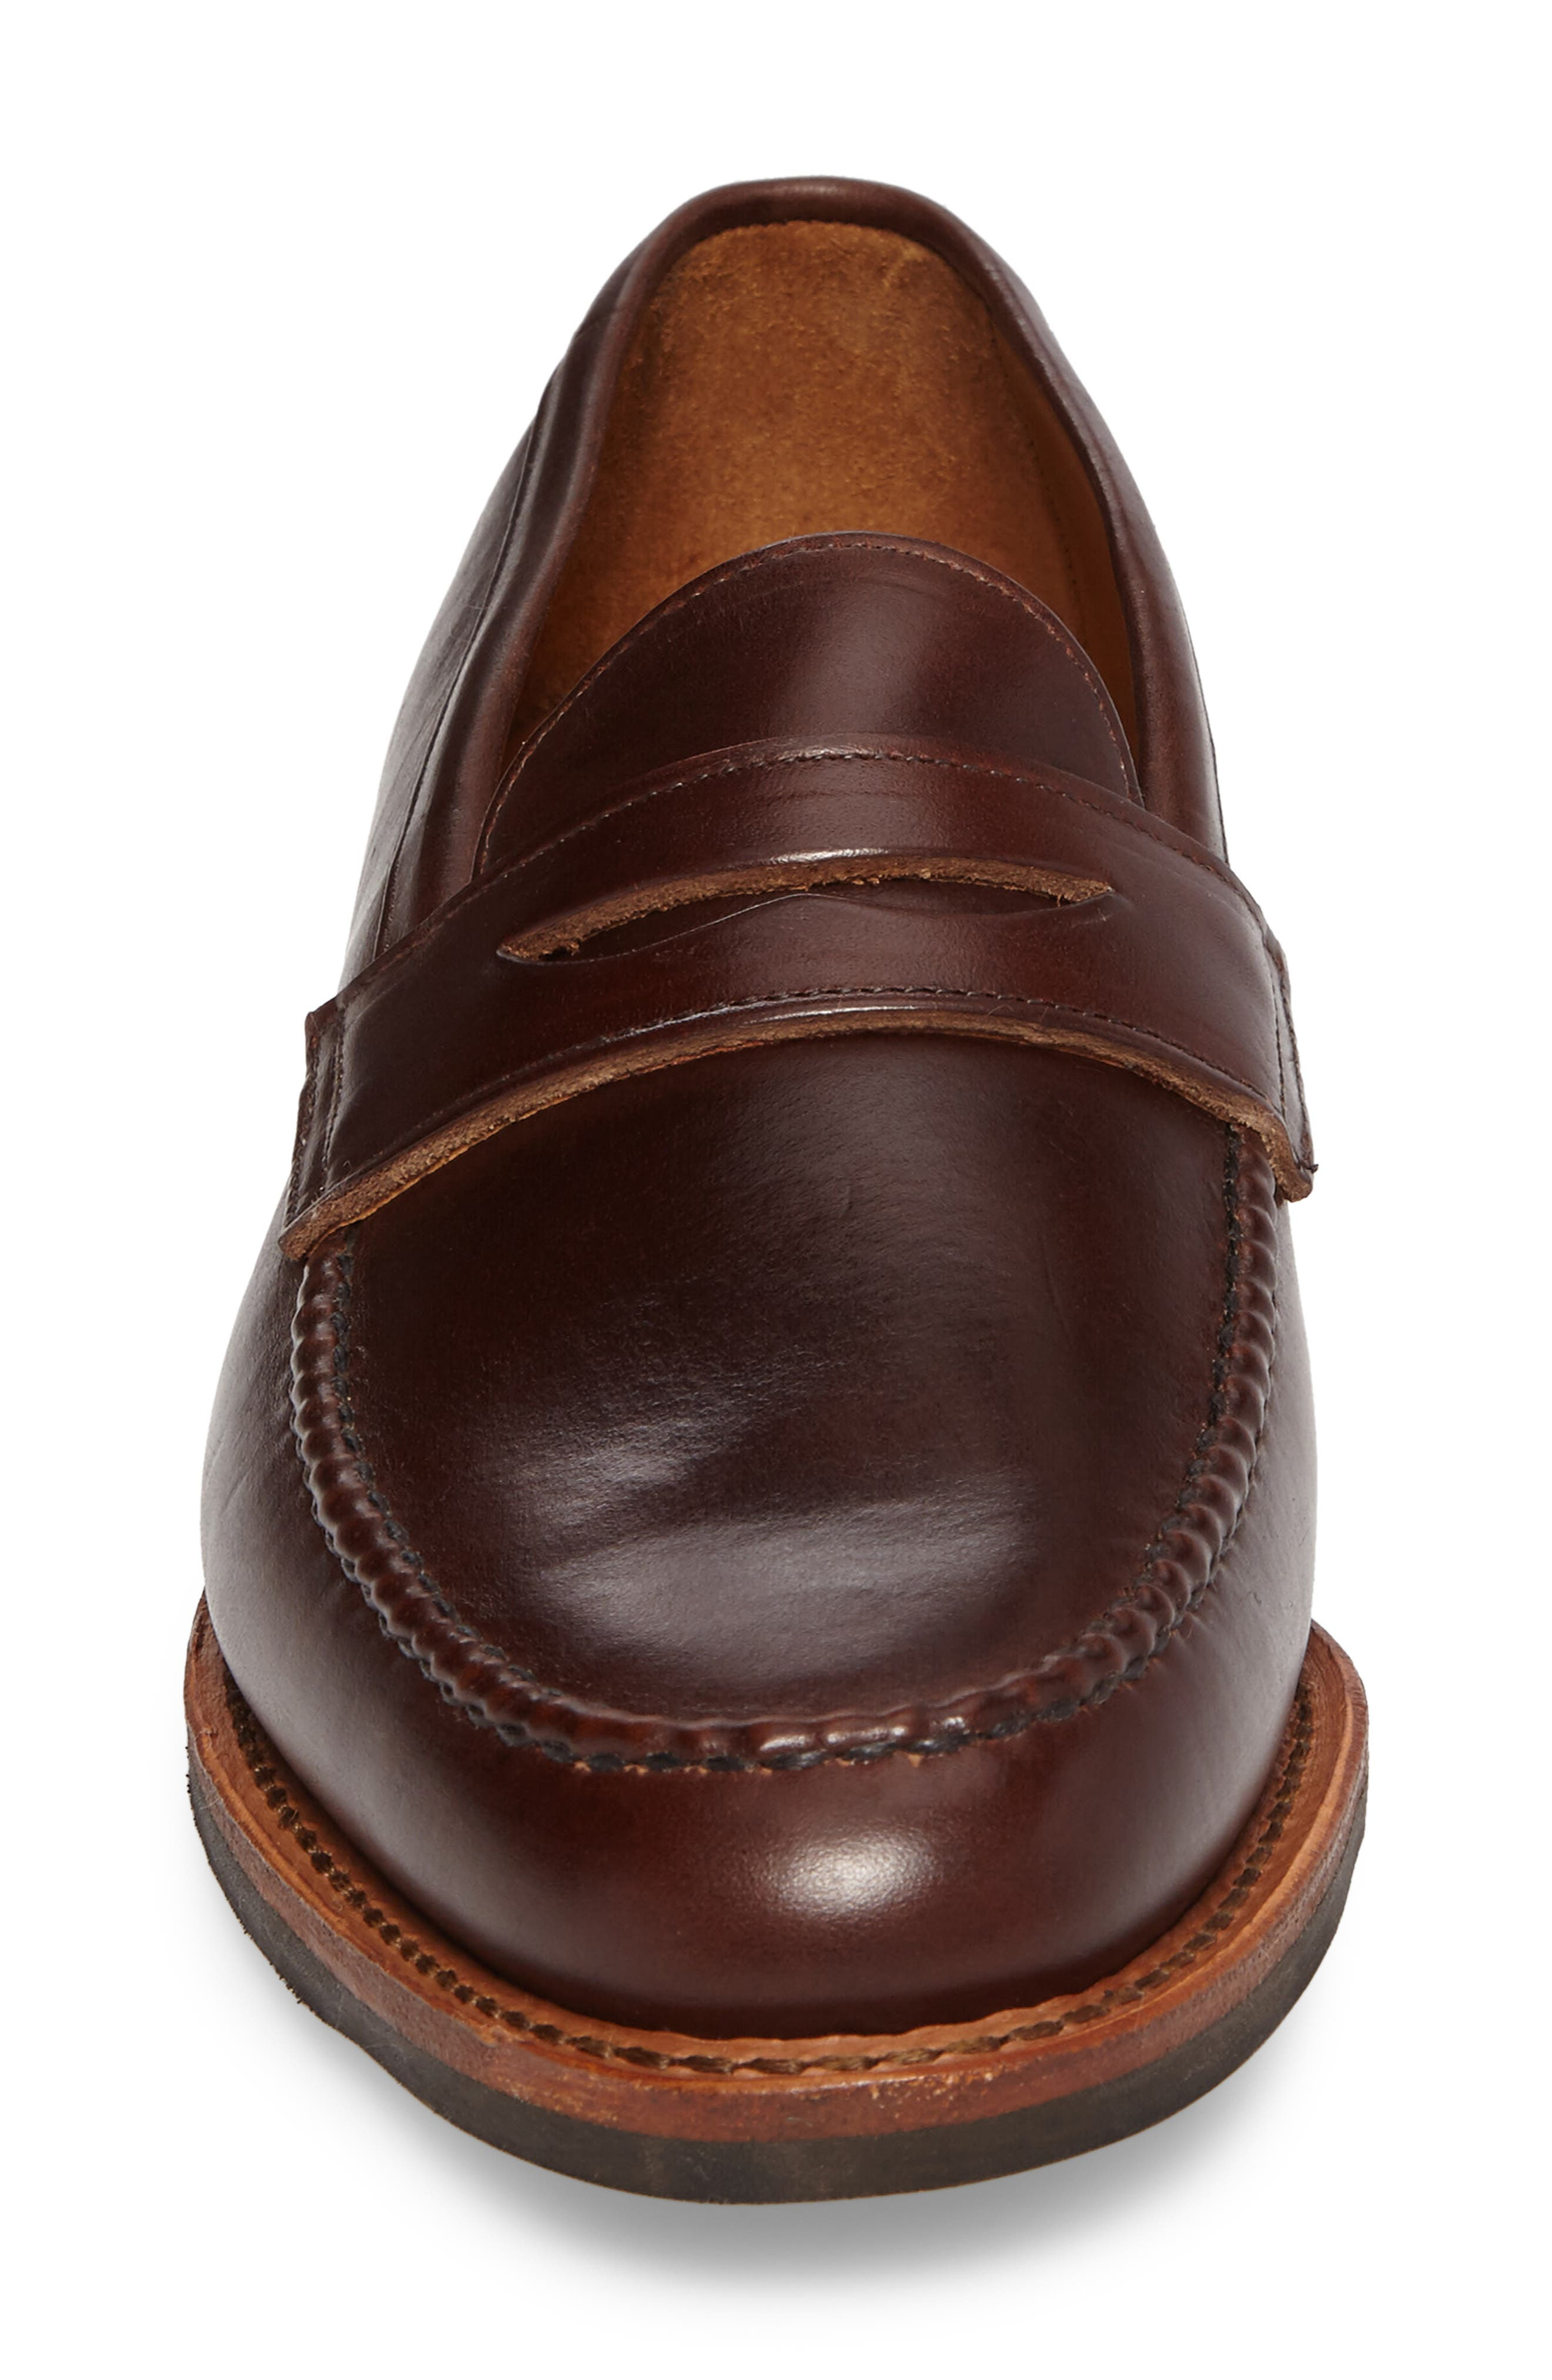 Addison Penny Loafer,                             Alternate thumbnail 4, color,                             BROWN LEATHER